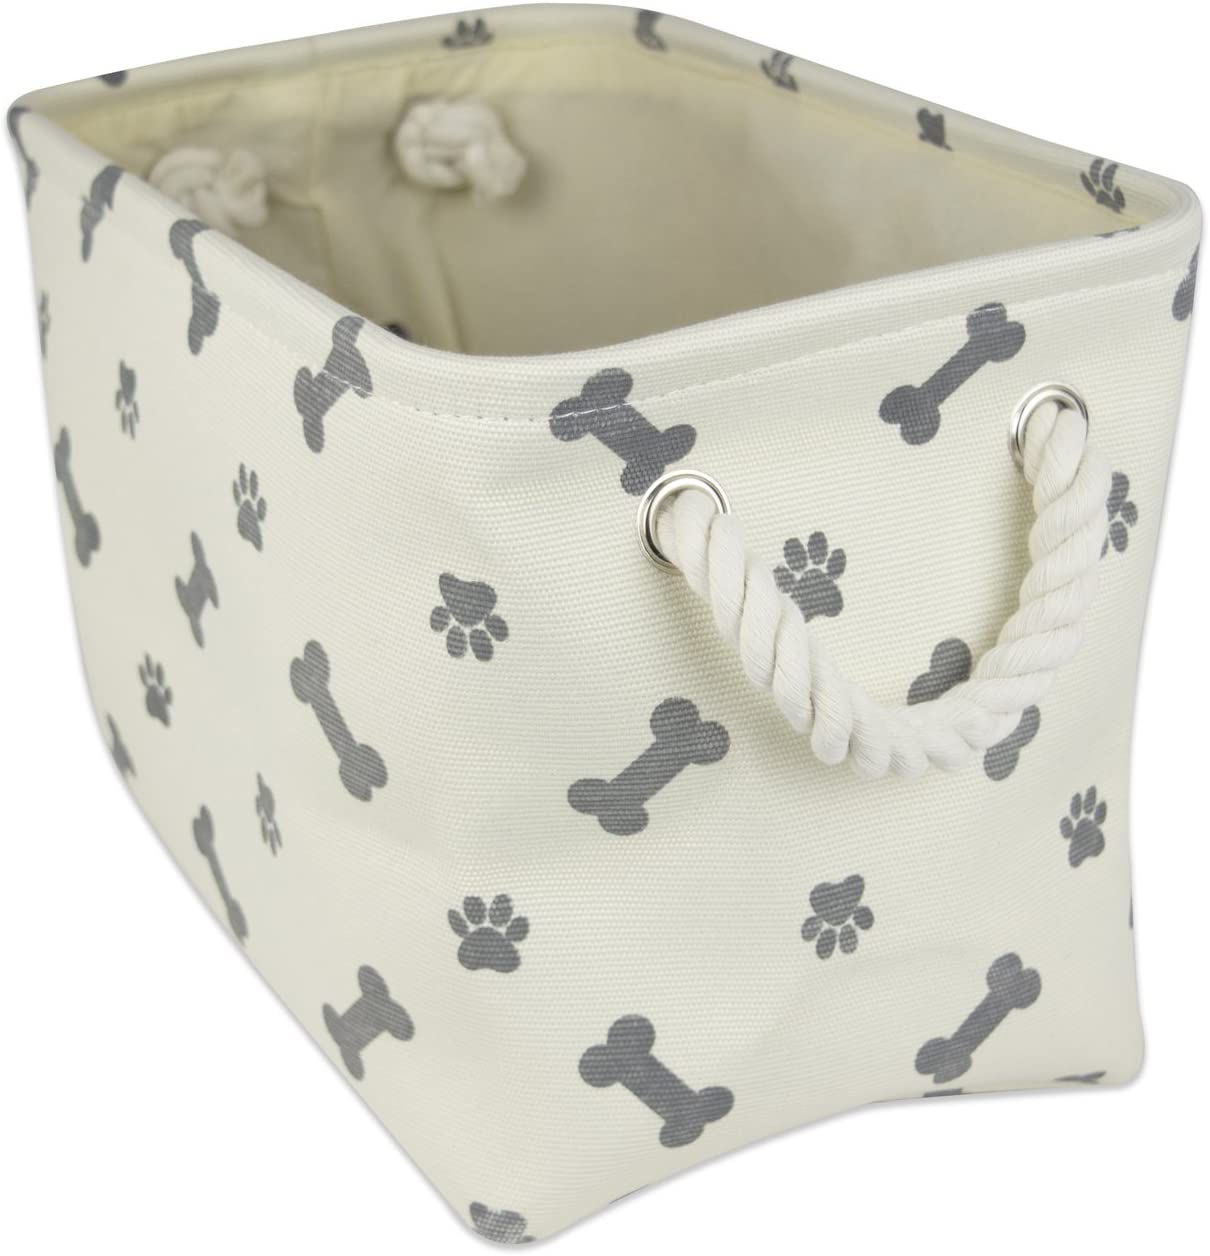 Bone Dry DII Medium Round Pet Toy and Accessory Storage Bin